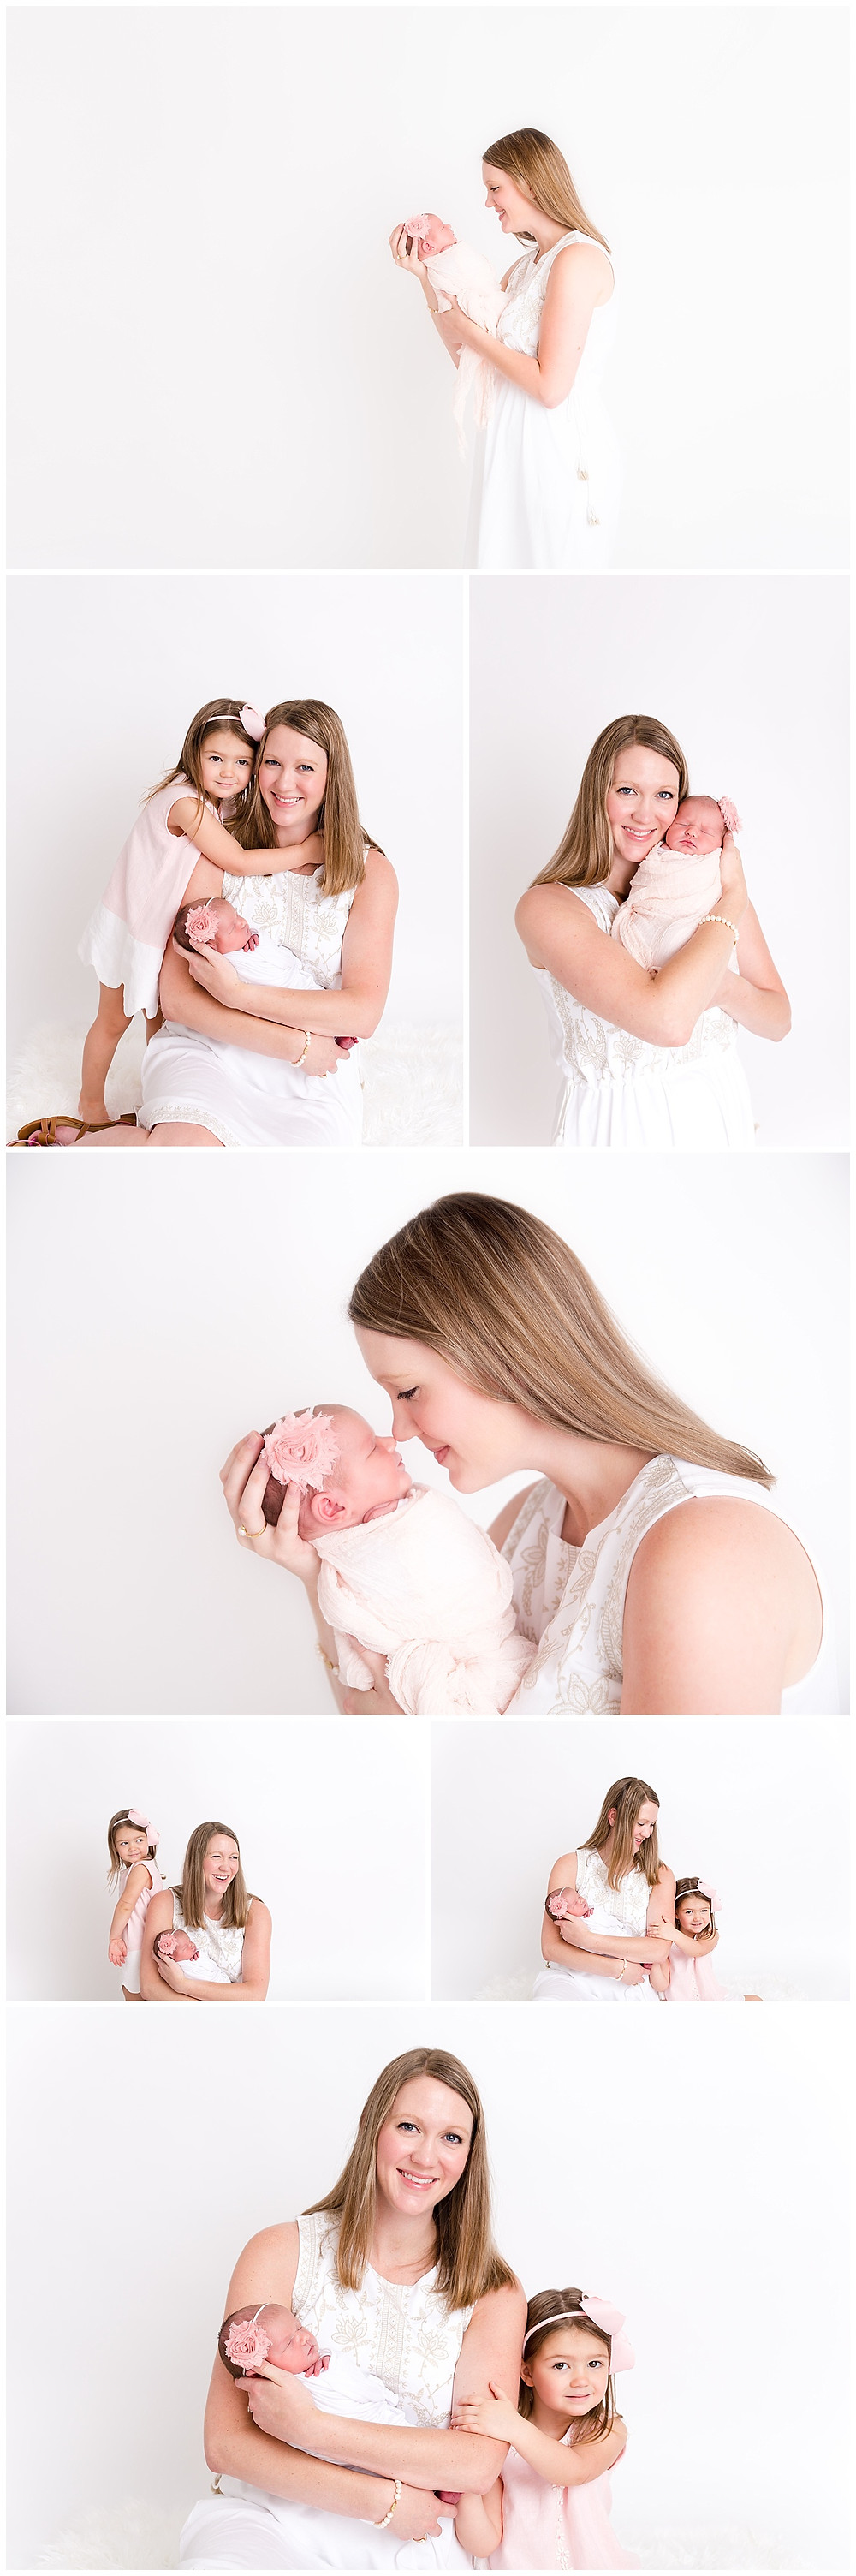 newborn photography, dallas, richardson, Lexi Meadows Photography